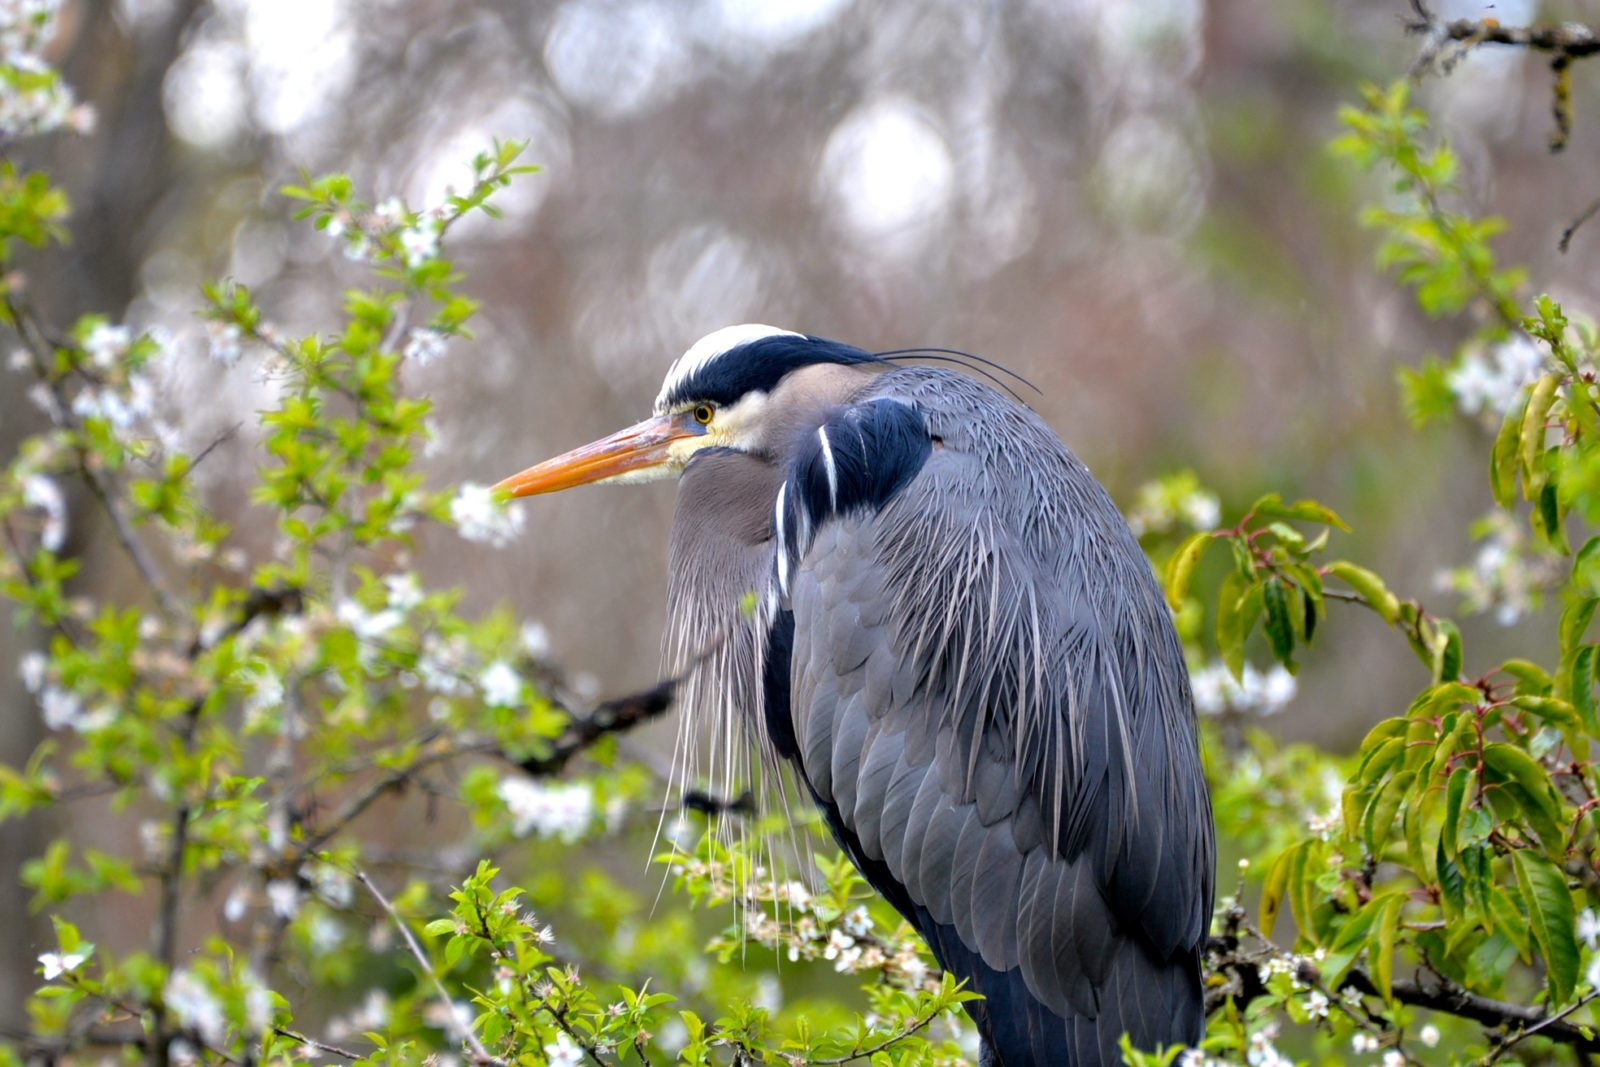 Great Blue Heron in the blossoms.